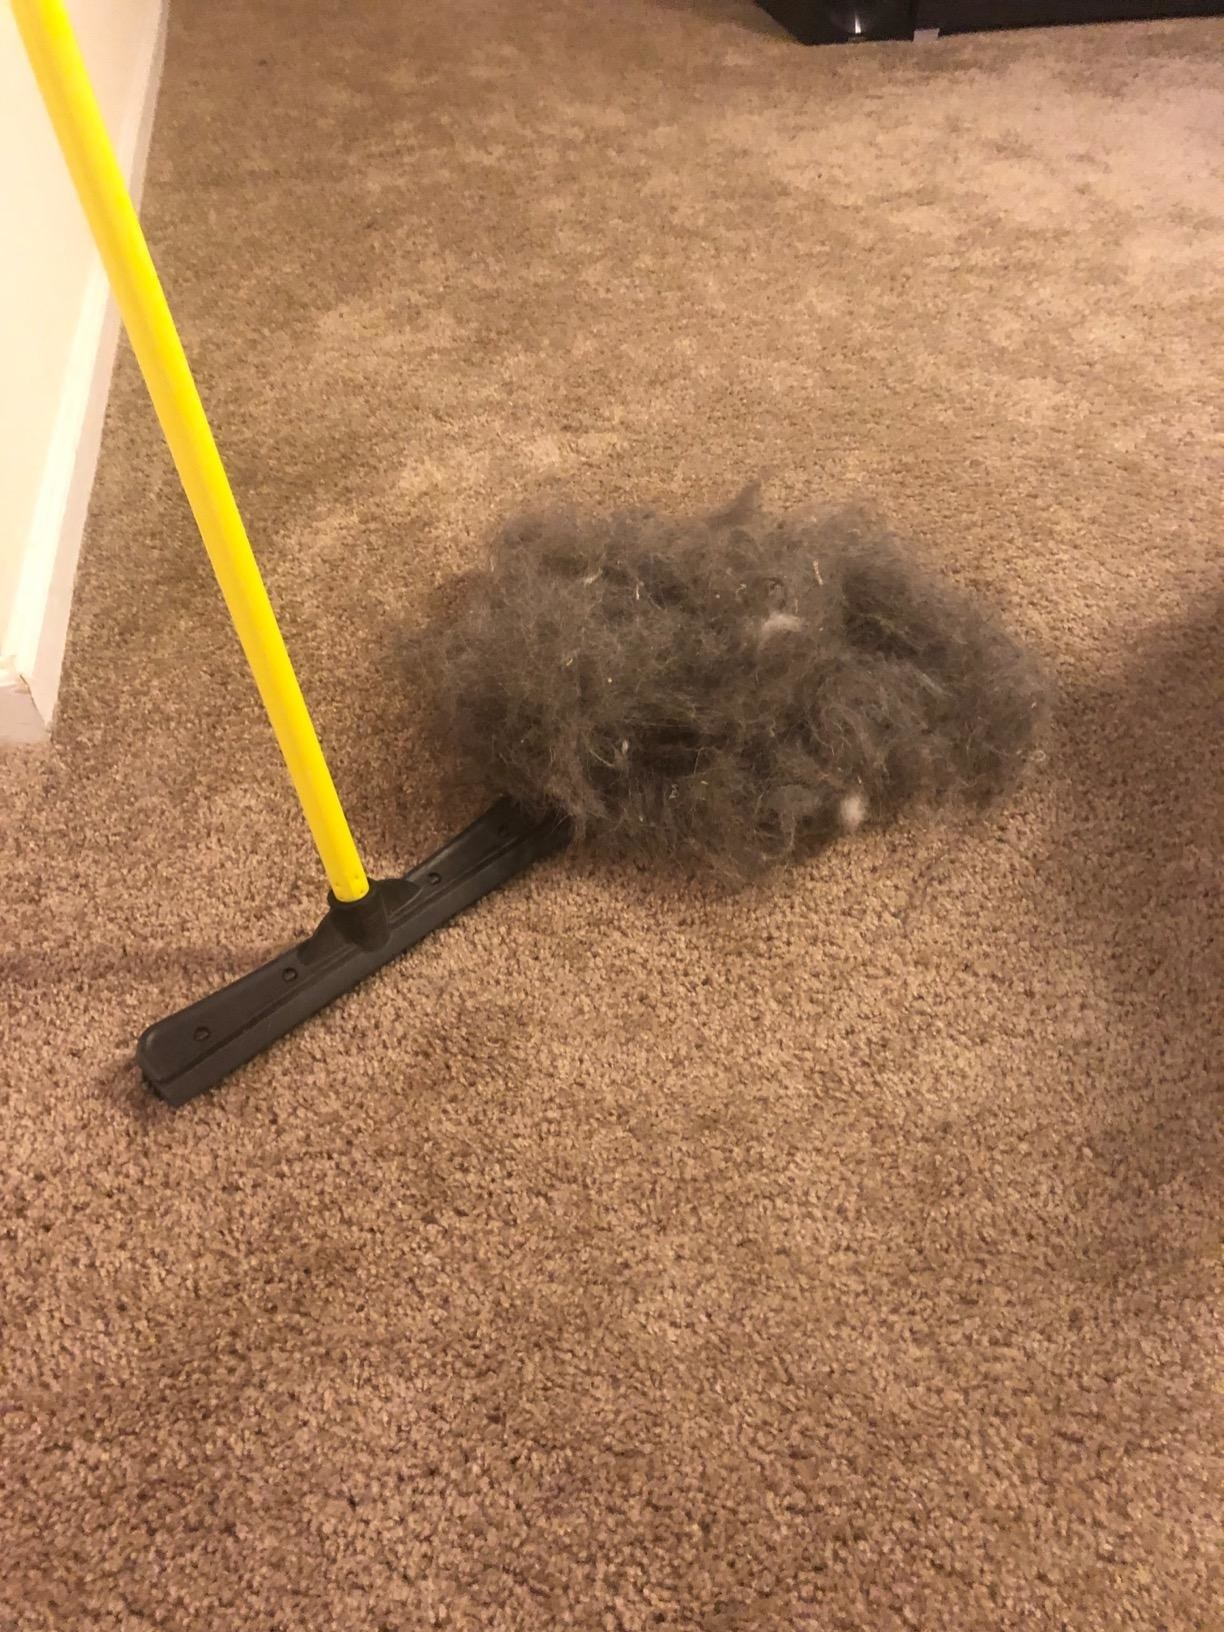 Reviewer's pile of hair and dust collected from carpet after using the broom device